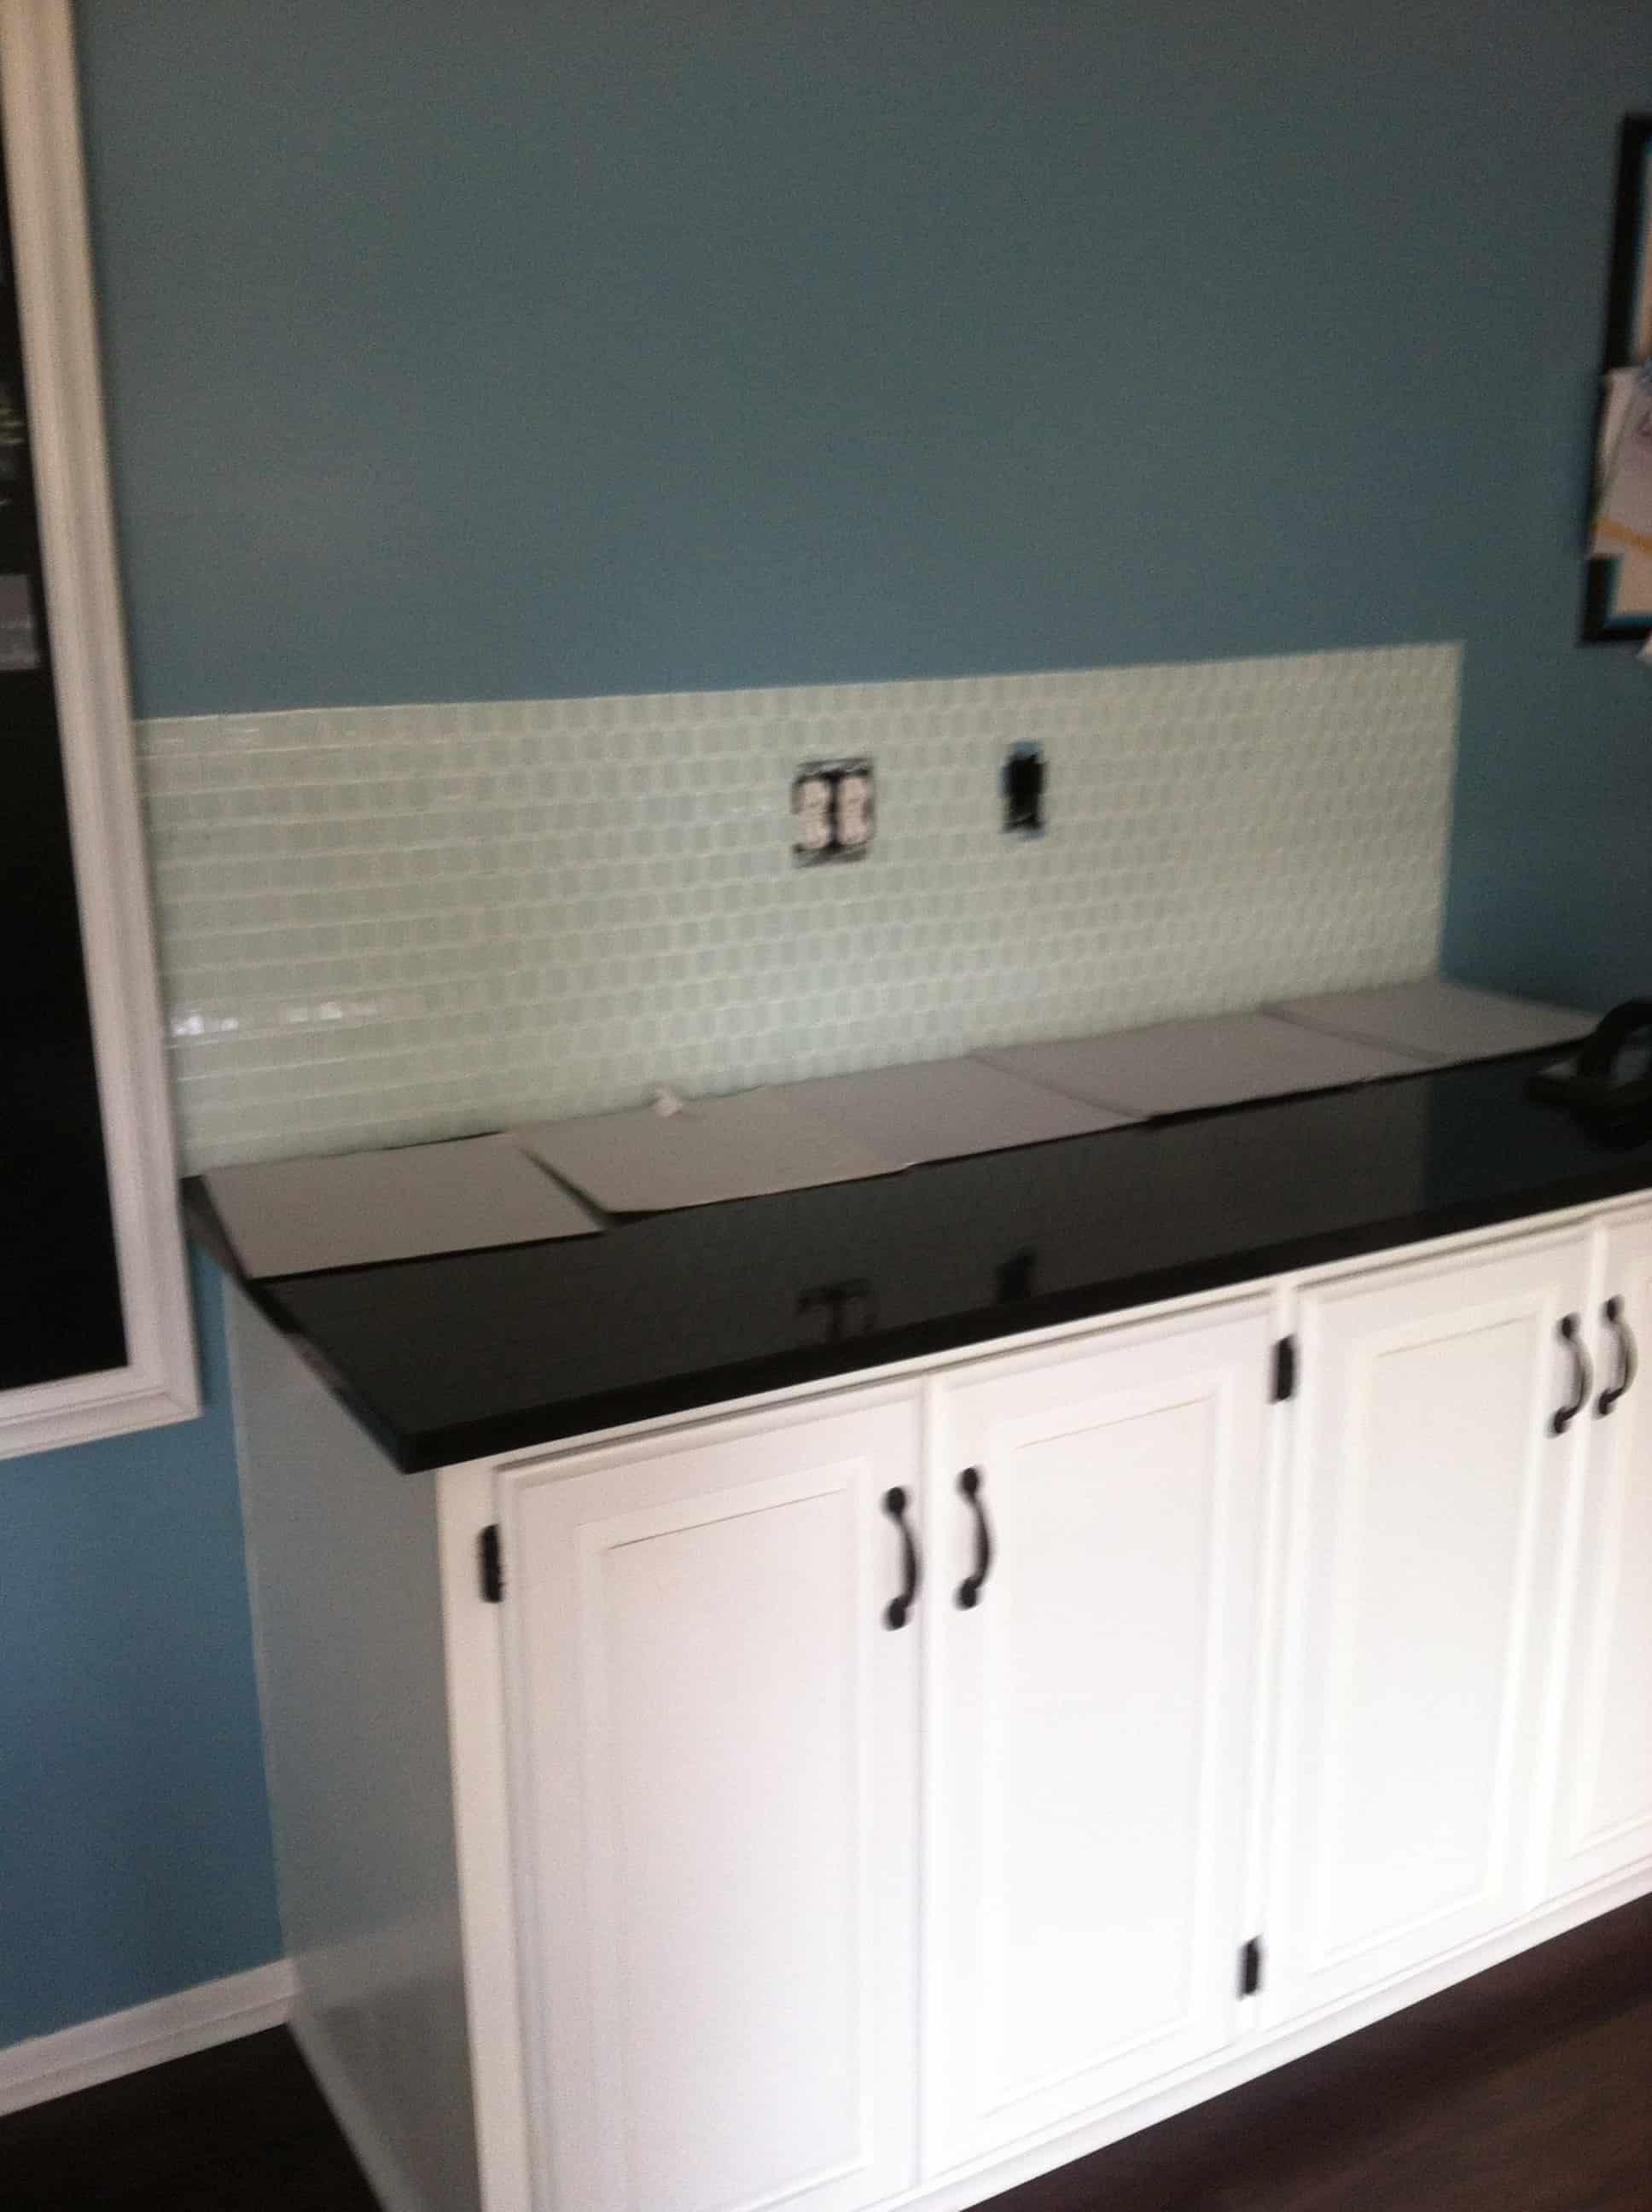 area of cabinets where basksplash tile has been installed using Musselbound Tile Mat Sheets